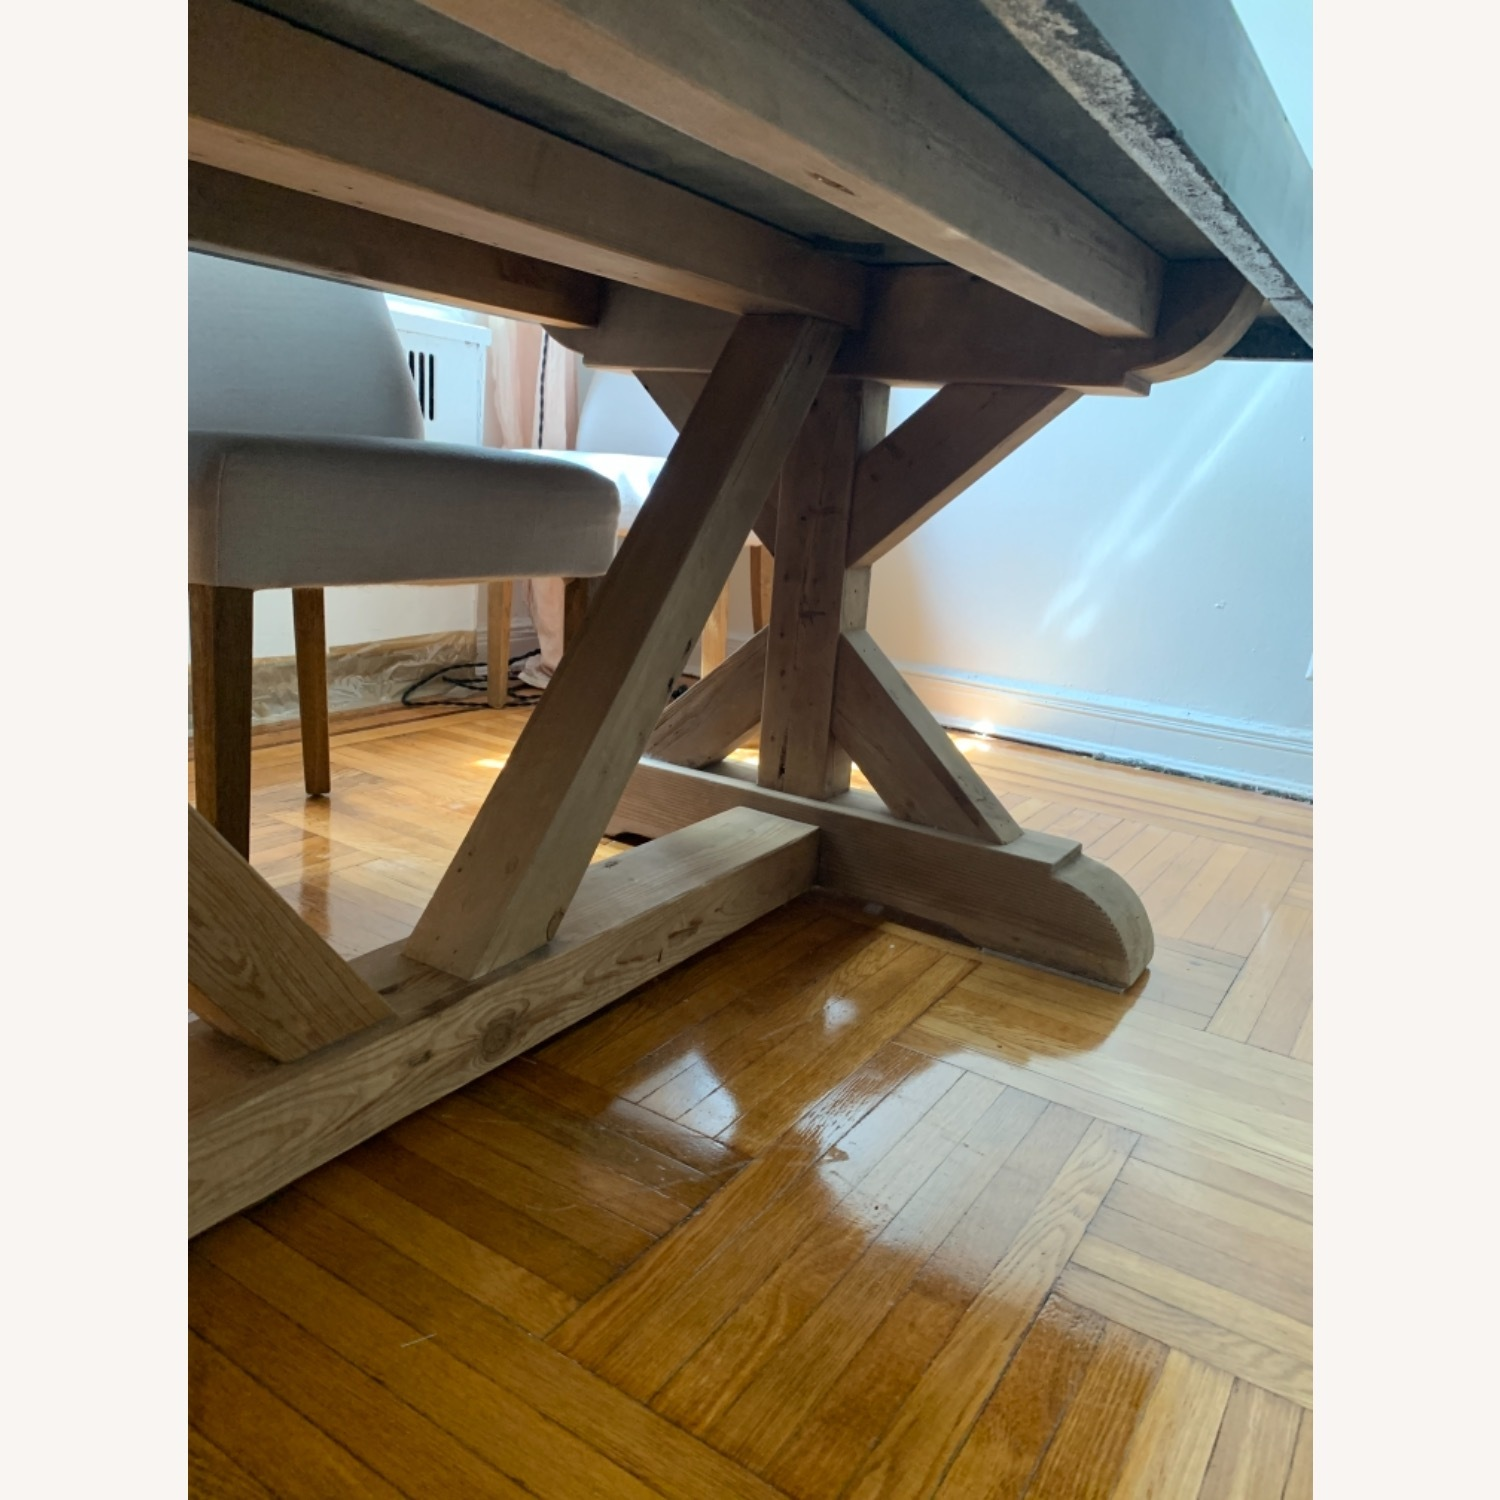 Restoration Hardware Salvaged Wood and Concrete Dining Table - image-14